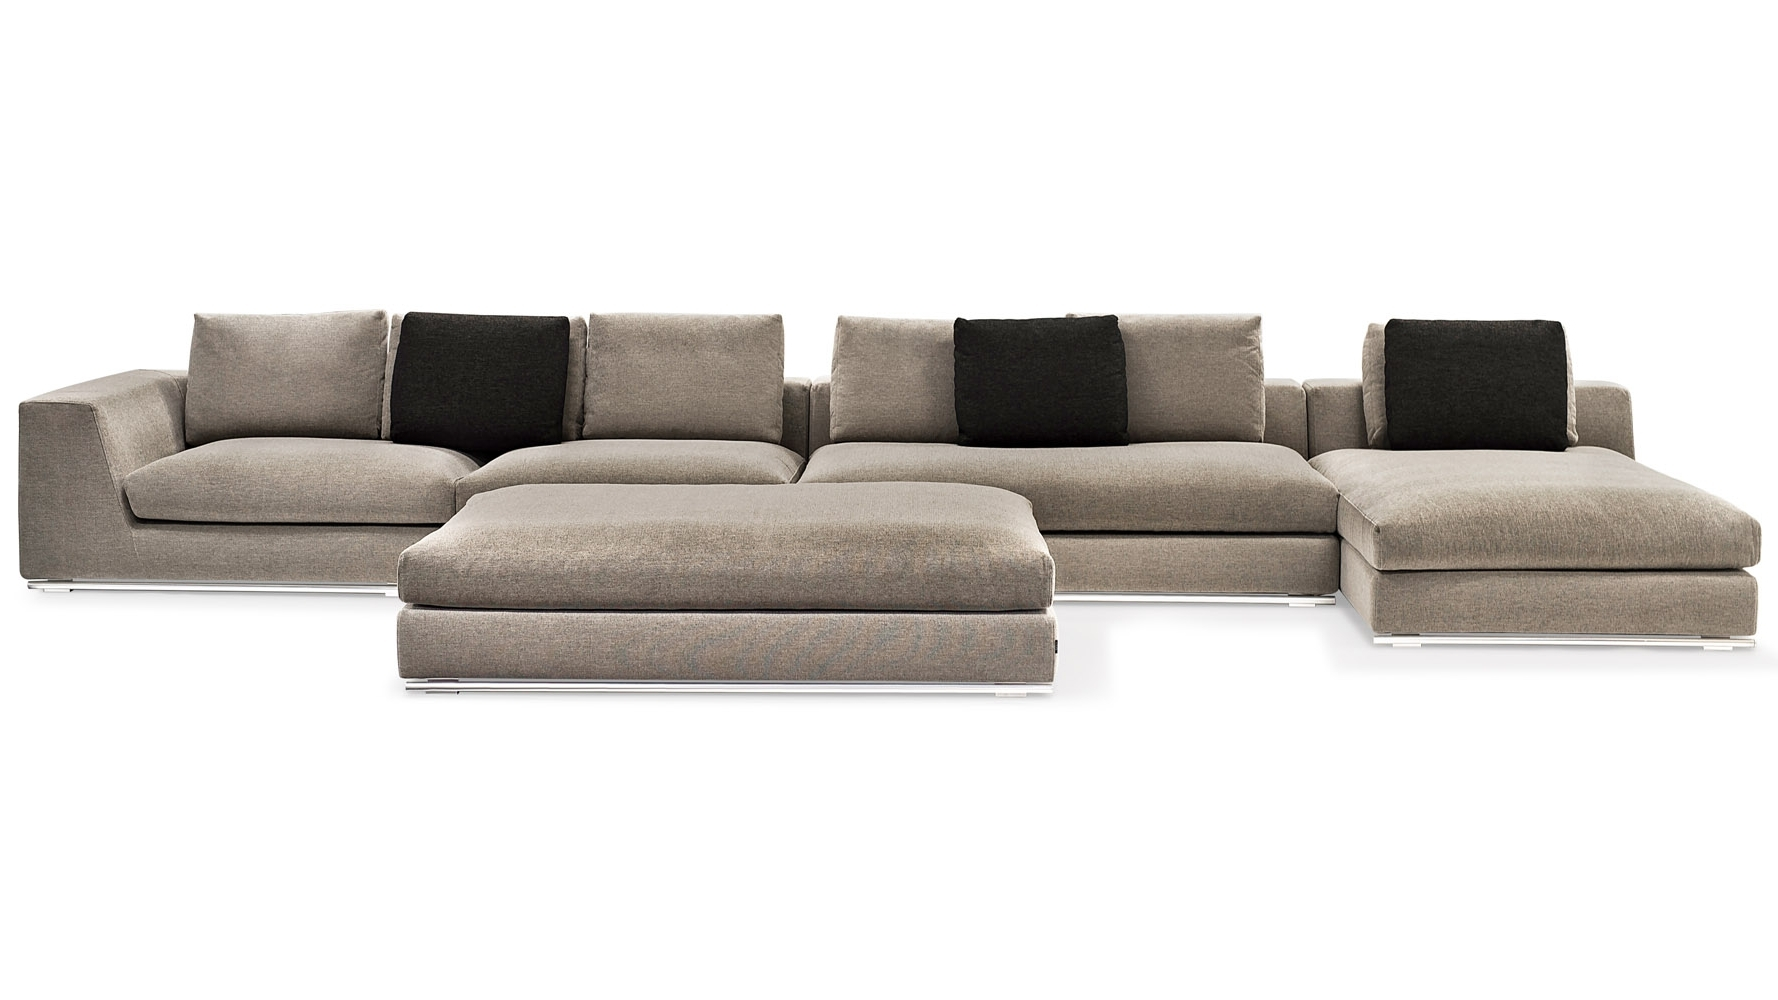 Newest Armless Sectional Sofas Throughout Comodo Sectional Sofa With Ottoman – Grey (View 13 of 20)